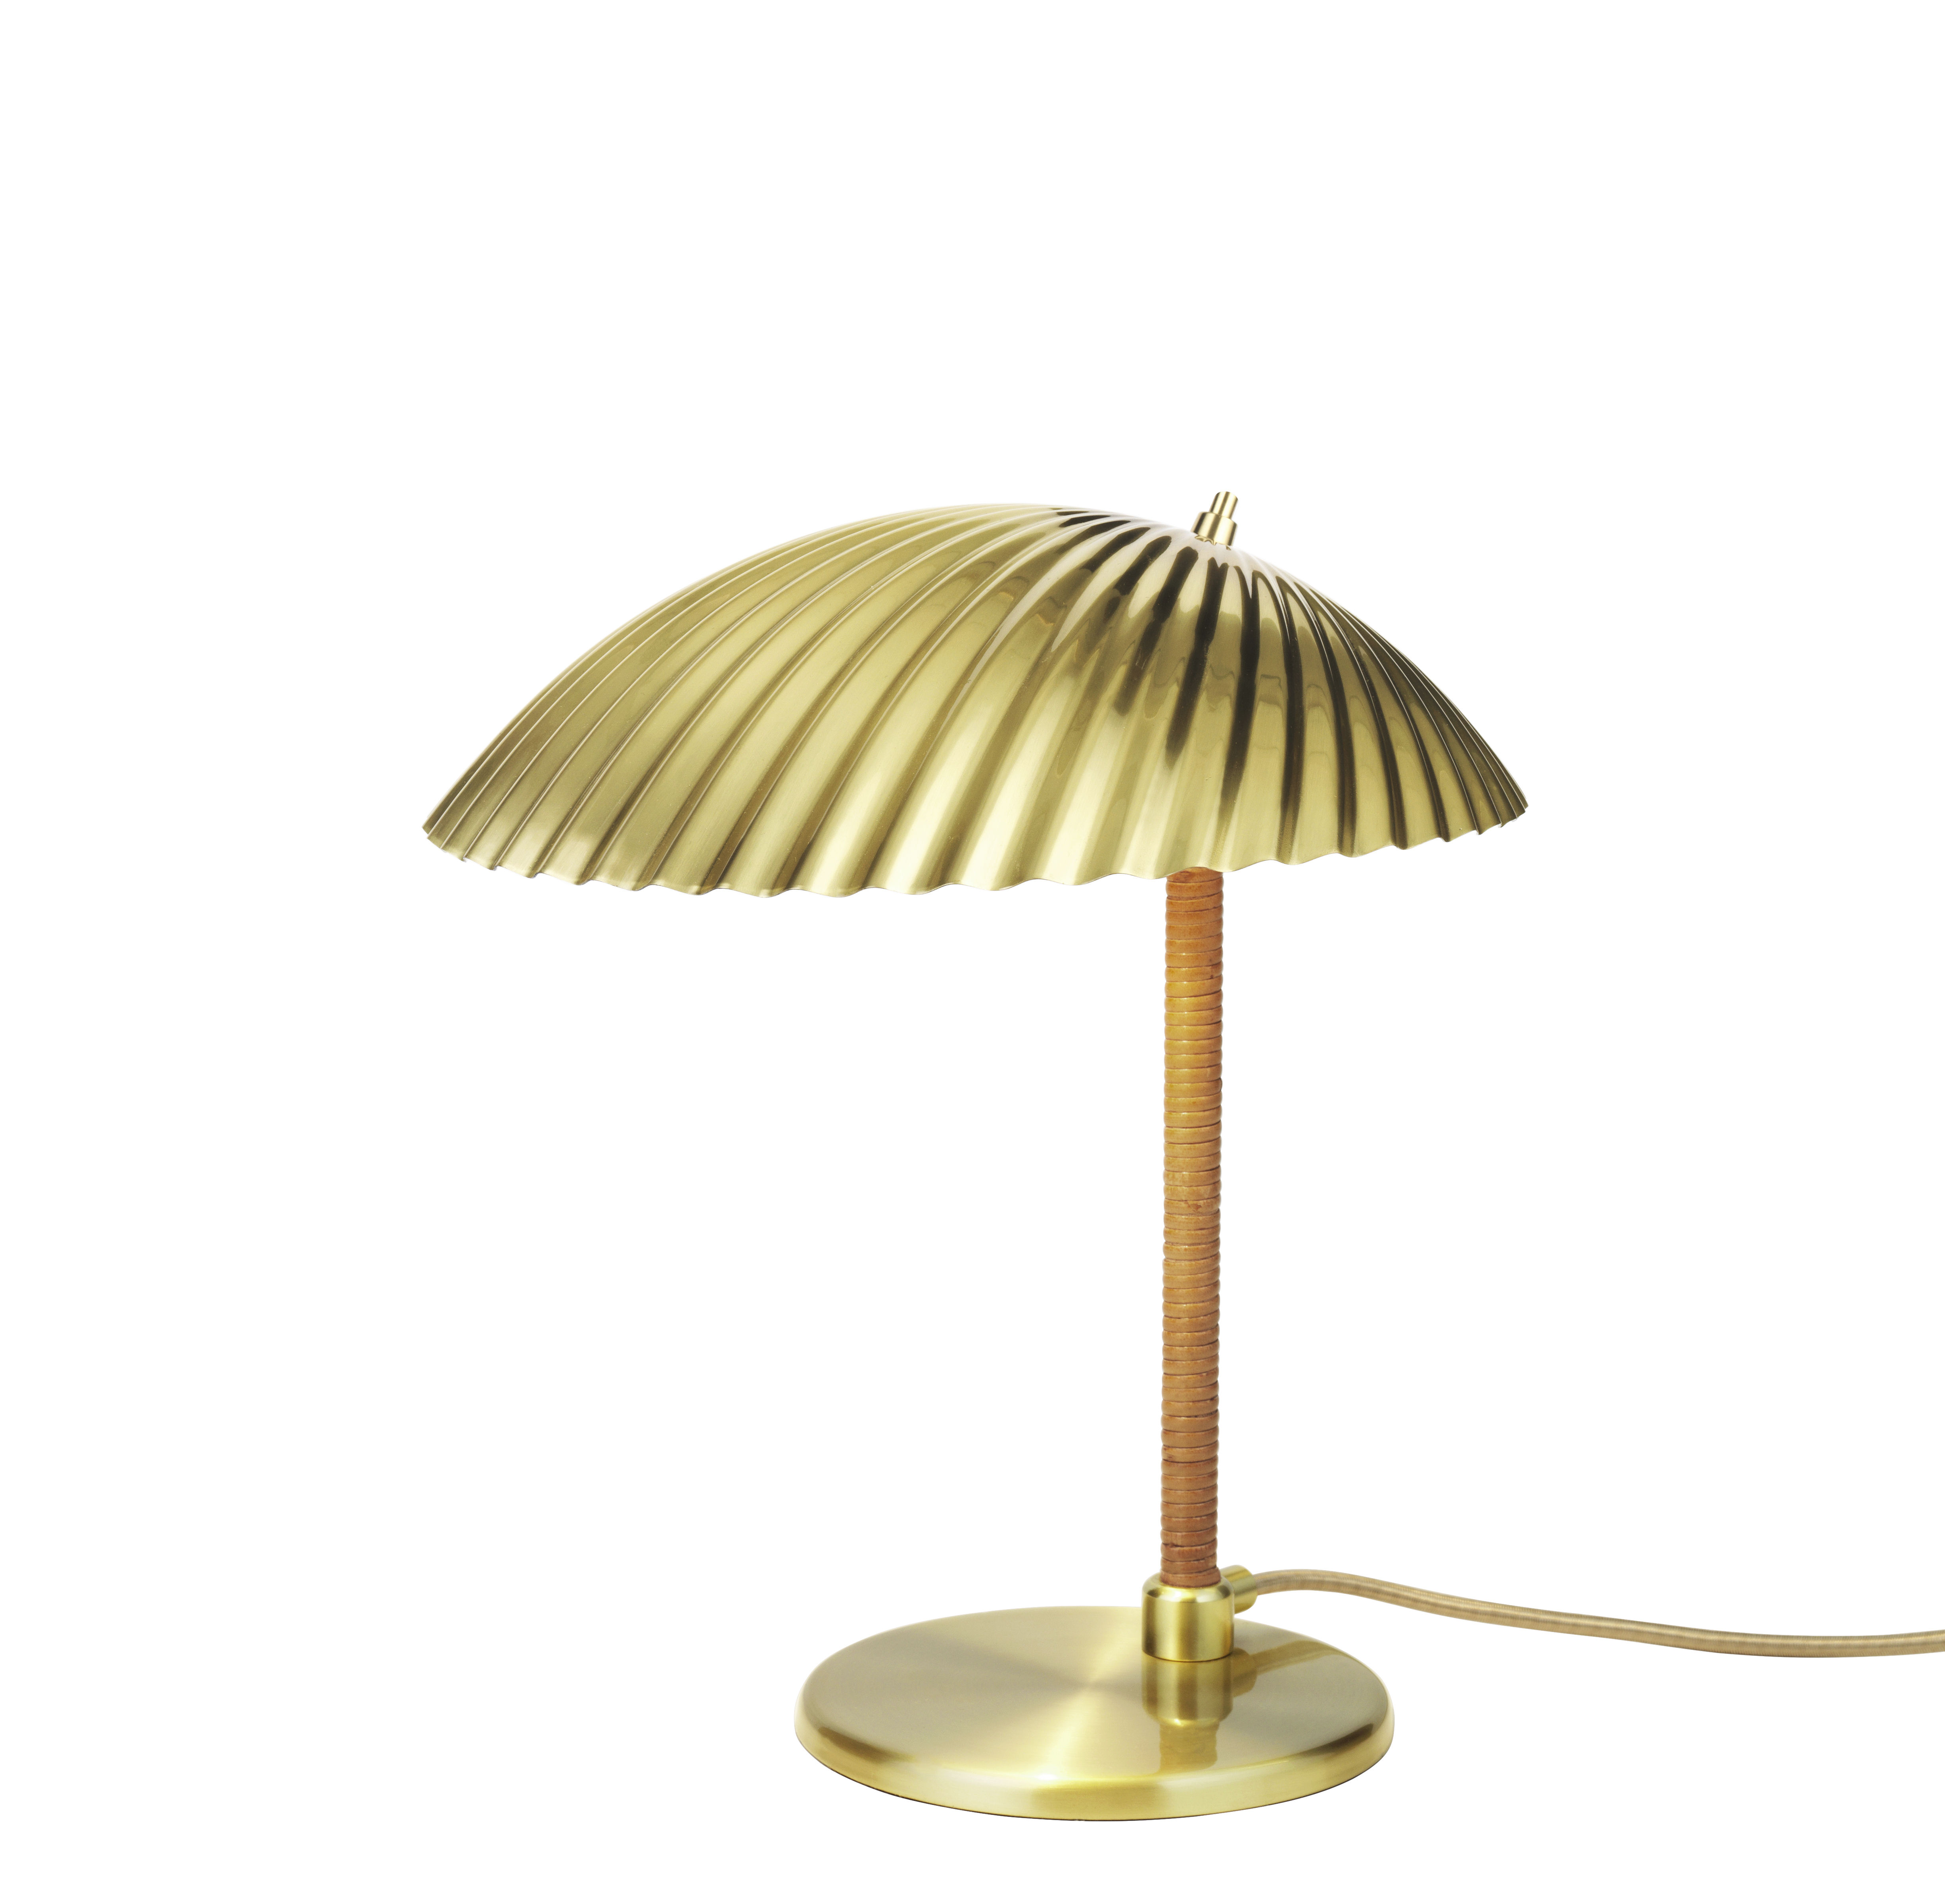 Lighting - Table Lamps - 5321 Table lamp - / 1938 reissue - Brass by Gubi - Brass - Brass, Textile